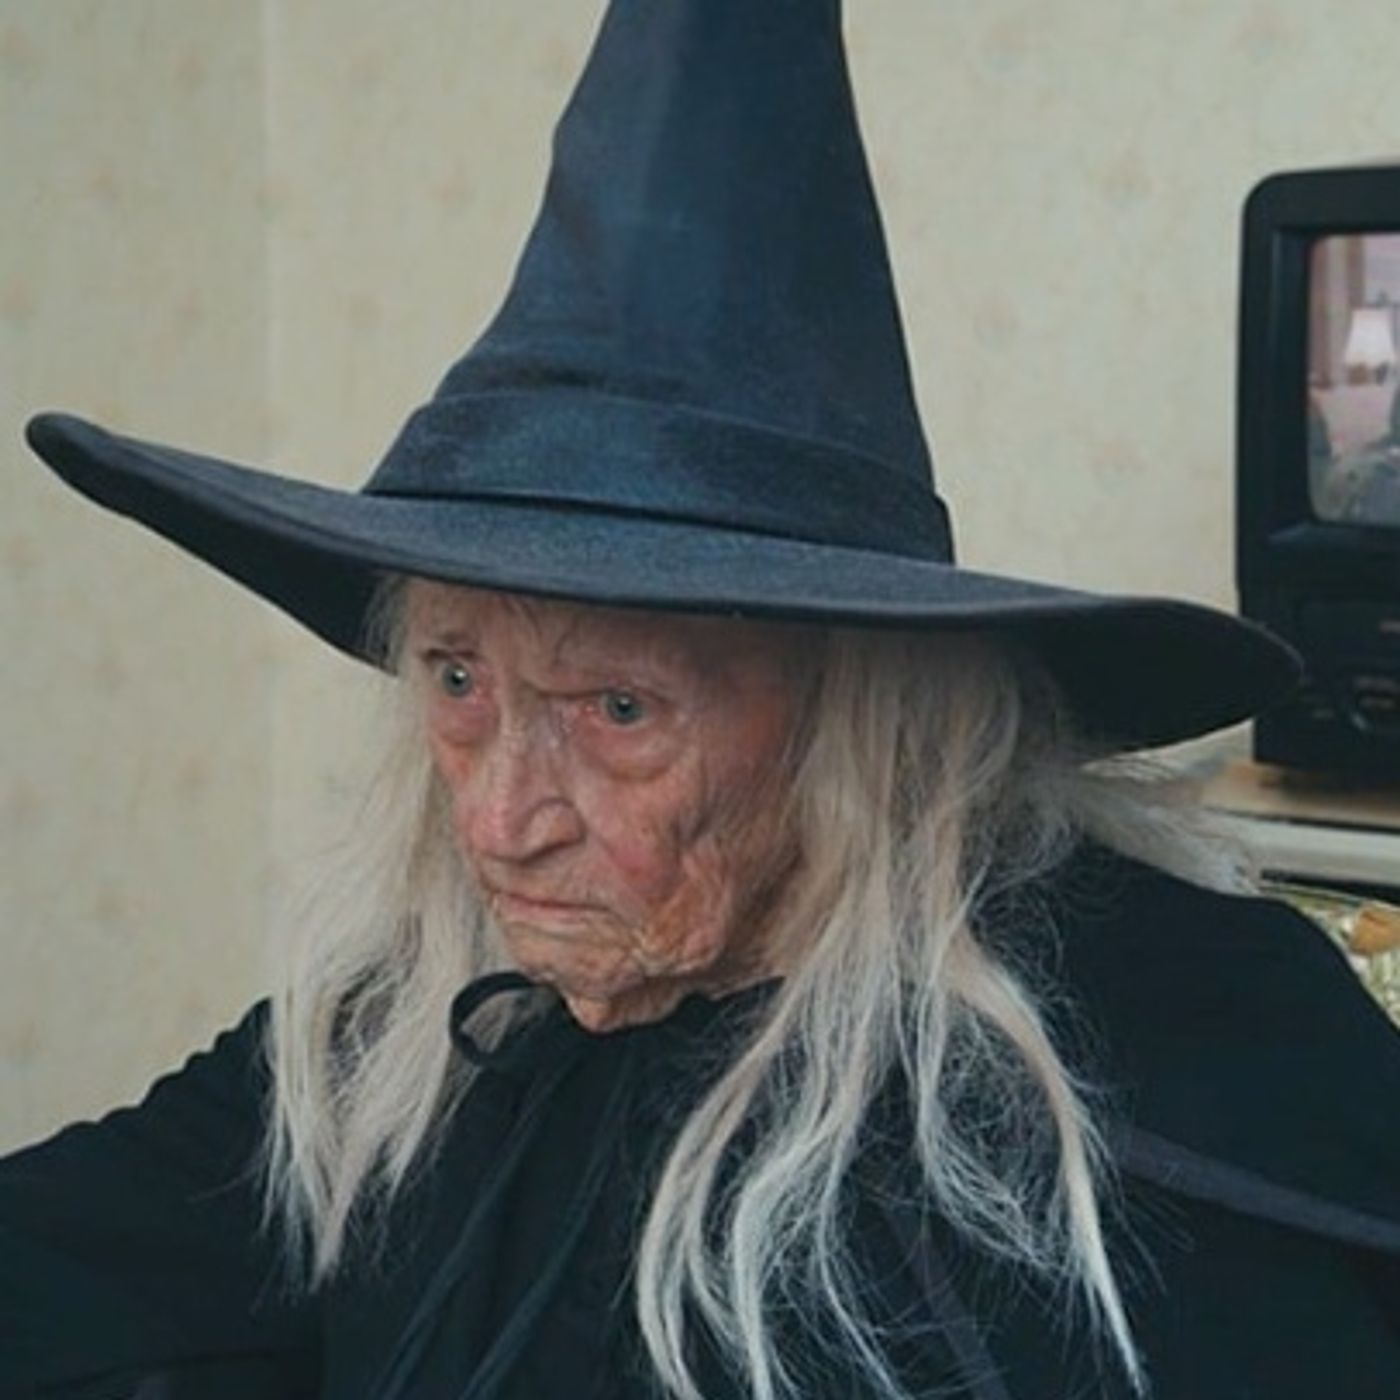 The Curse of a Dying Witch